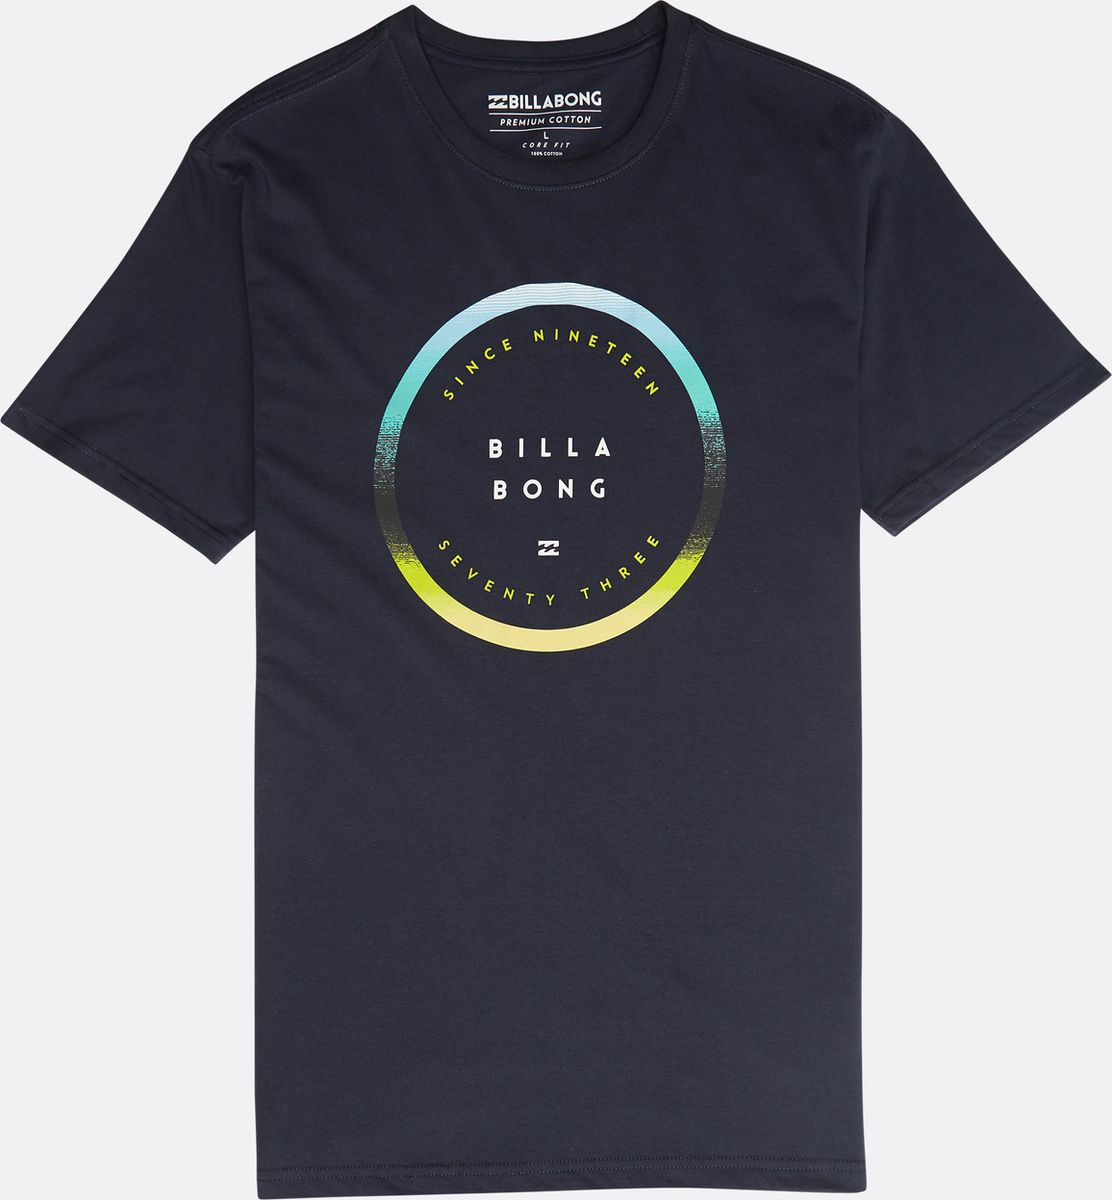 Футболка Billabong Rotated Tee Ss футболка хлопковая nike tee club19 ss aj1504 451